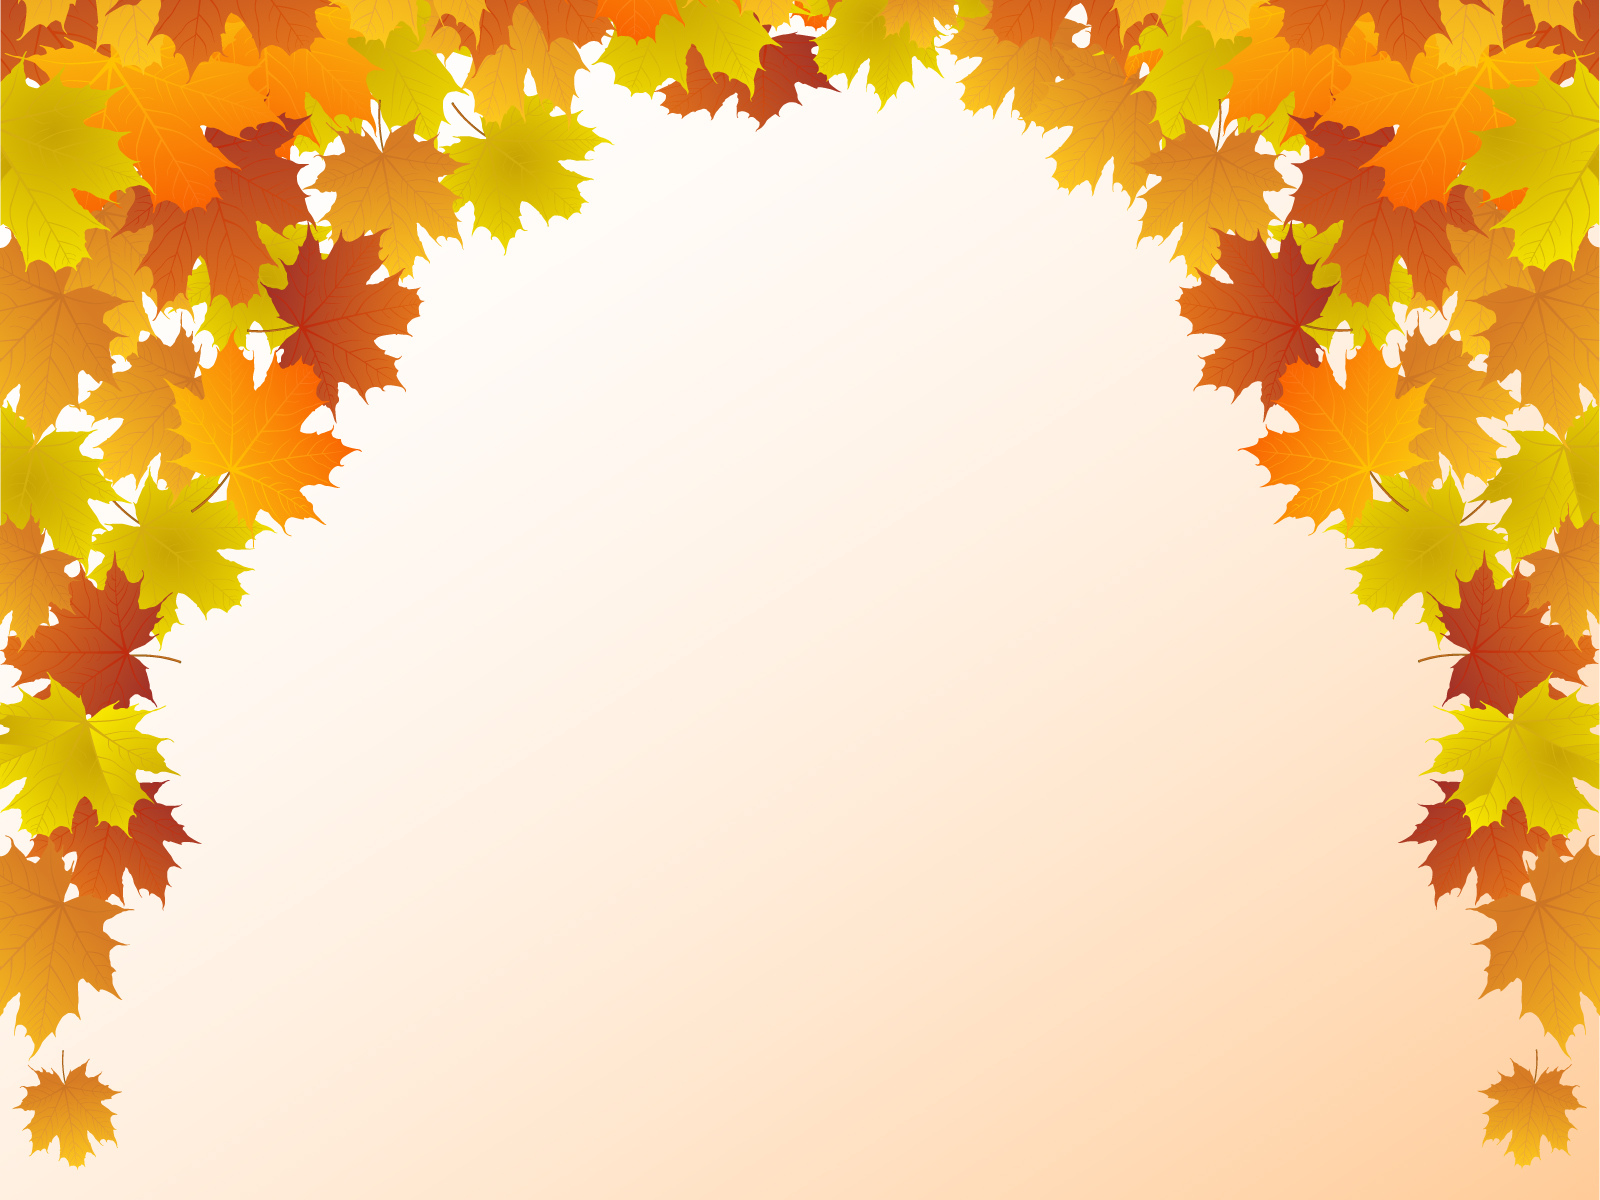 Autumn Leaf Frame PPT Backgrounds